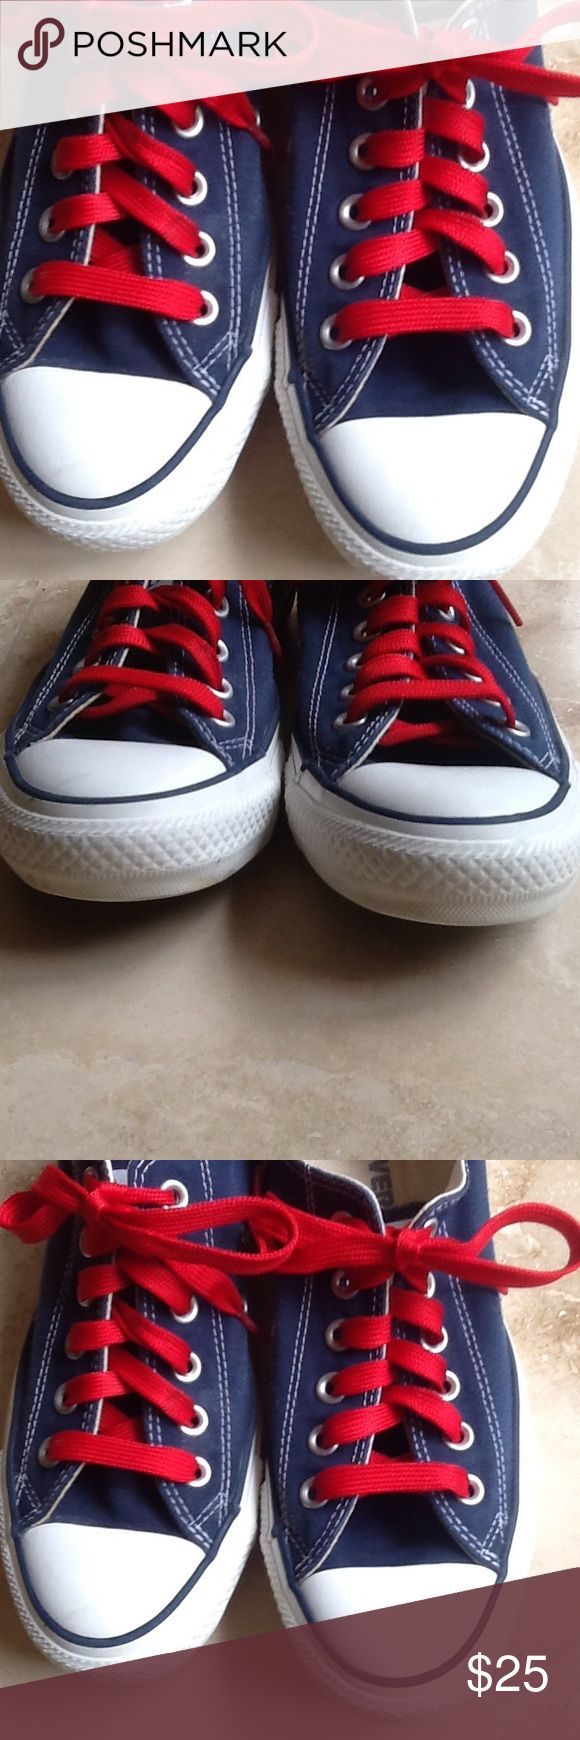 All-Star Converse 4th of July color combo. Ladies size 7. Only wear is a little bit on inside. Nice white rubber. Converse Shoes Sneakers